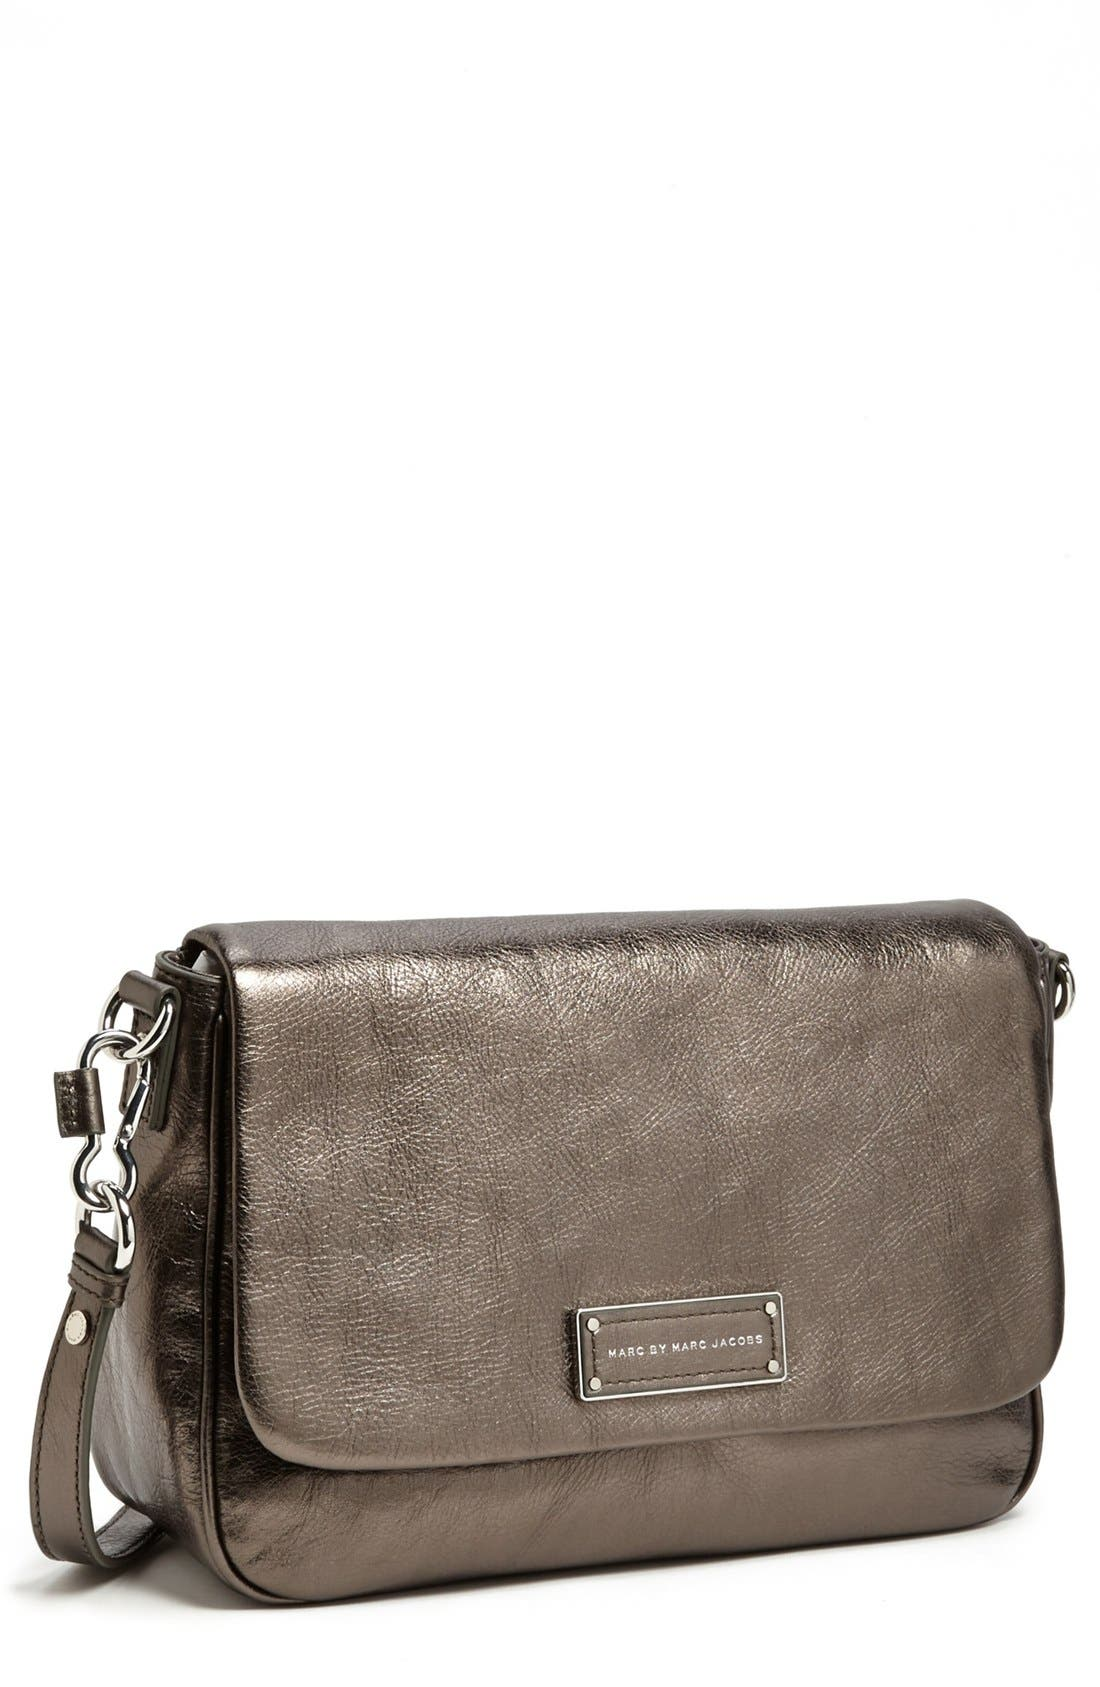 Alternate Image 1 Selected - MARC BY MARC JACOBS 'Too Hot to Handle' Metallic Leather Crossbody Bag